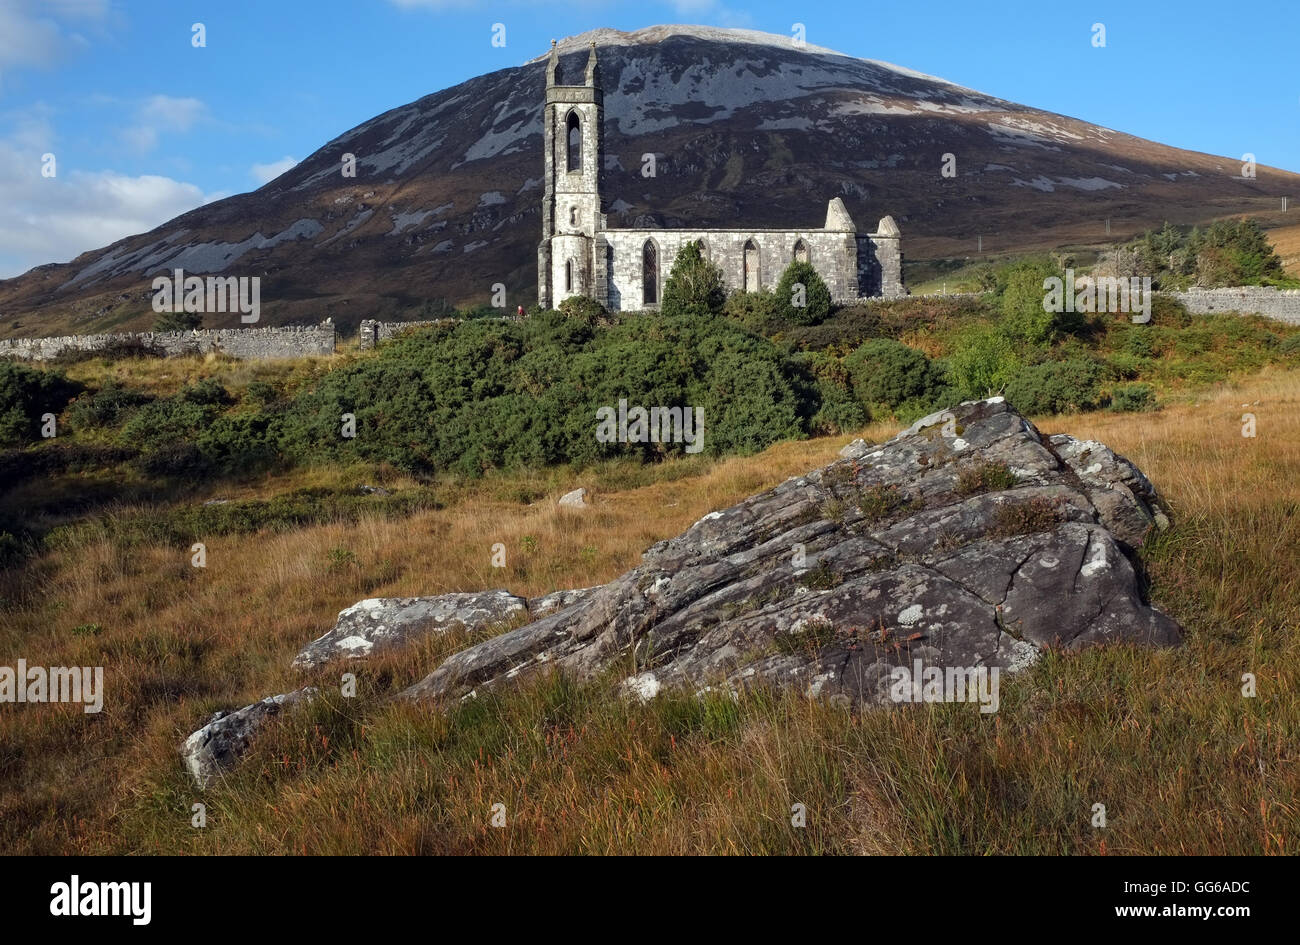 Church of Ireland, (now derelict), Dunlewey, Donegal. - Stock Image